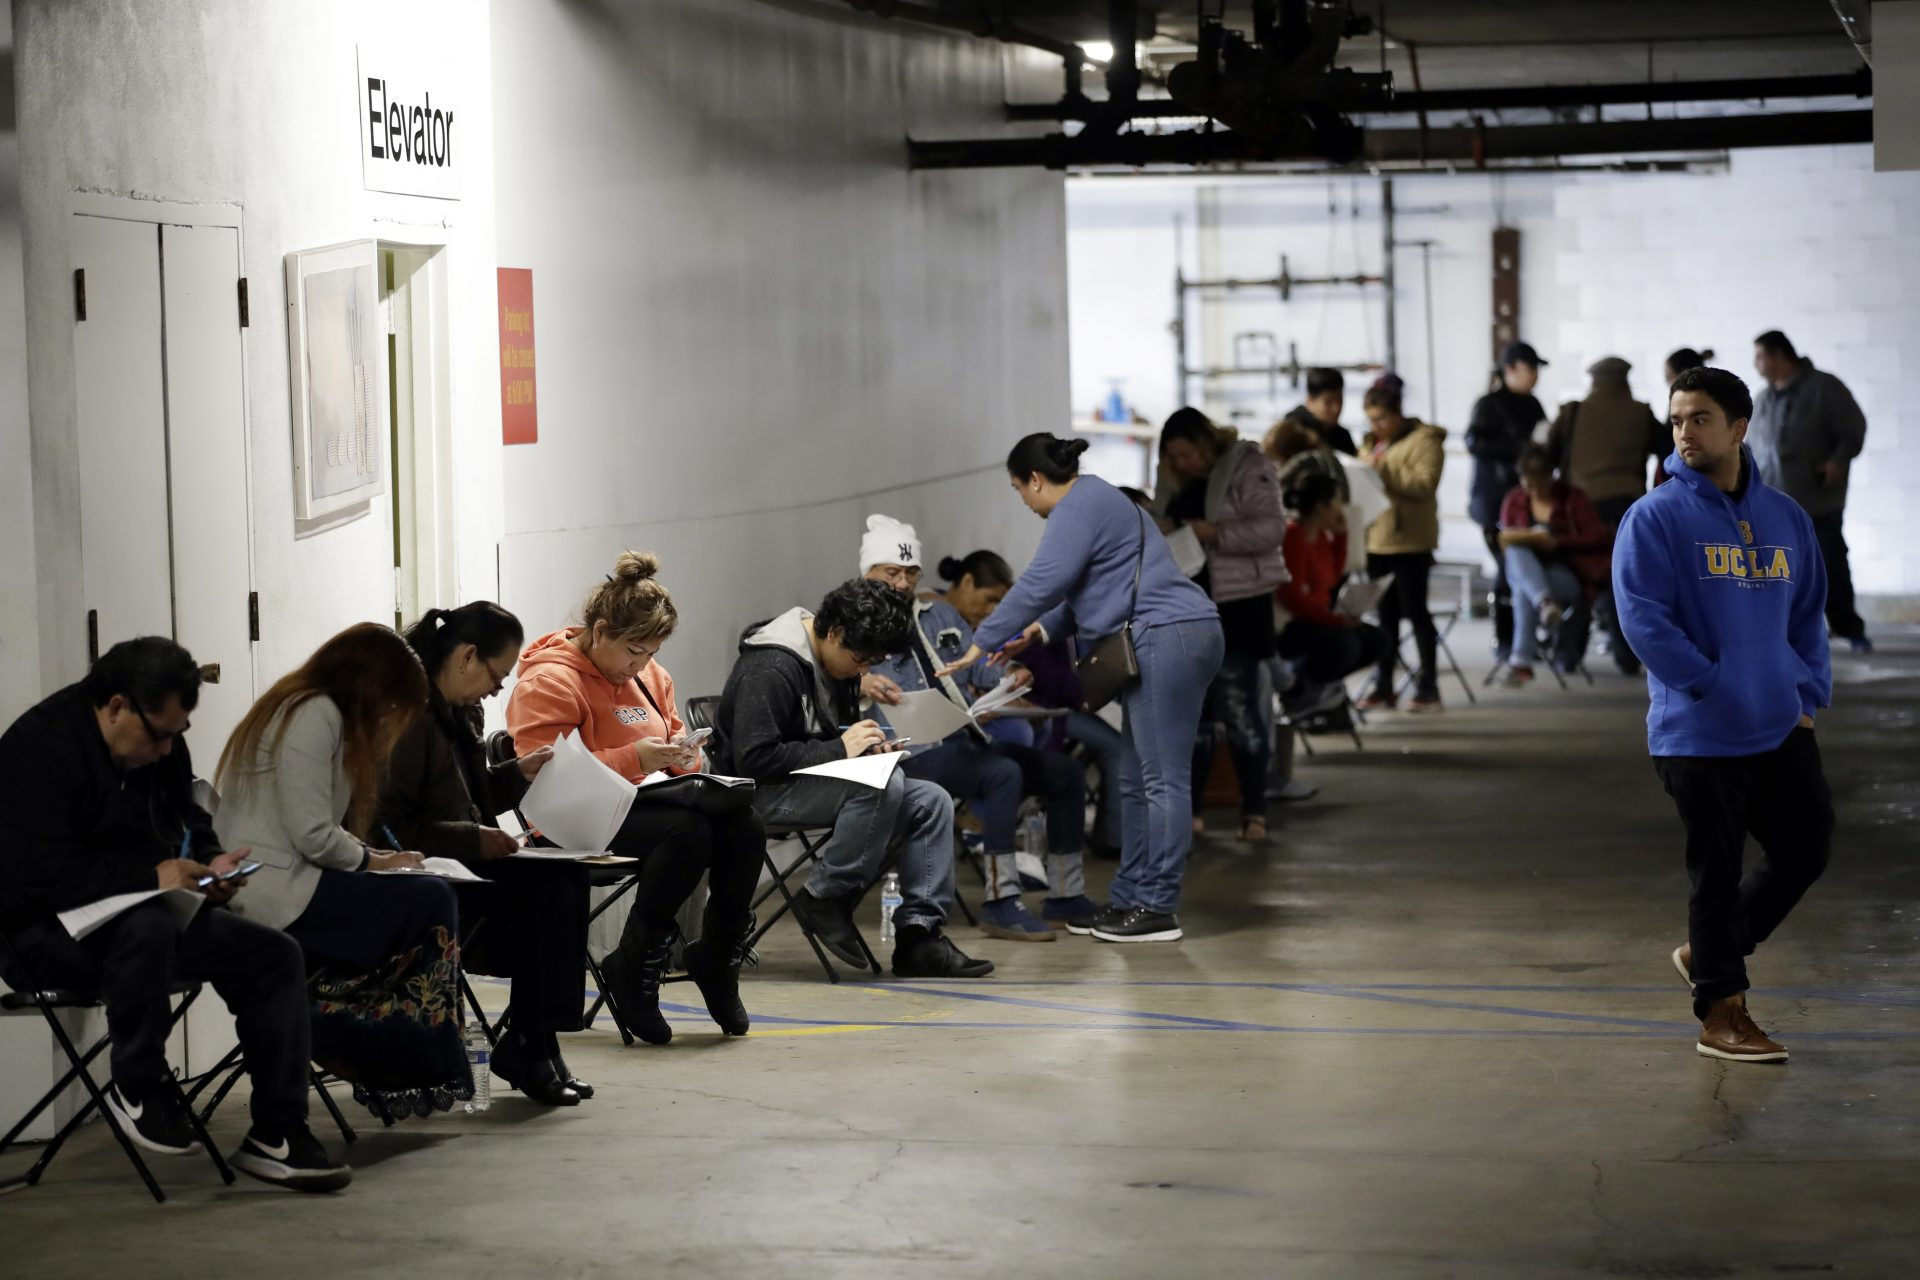 Unionized hospitality workers wait in line in a basement garage to apply for unemployment benefits at the Hospitality Training Academy Friday, March 13, 2020, in Los Angeles. Fearing a widespread health crisis, Californians moved broadly Friday to get in front of the spread of the coronavirus, shuttering schools that educate hundreds of thousands of students, urging the faithful to watch religious services online and postponing or scratching just about any event that could attract a big crowd.